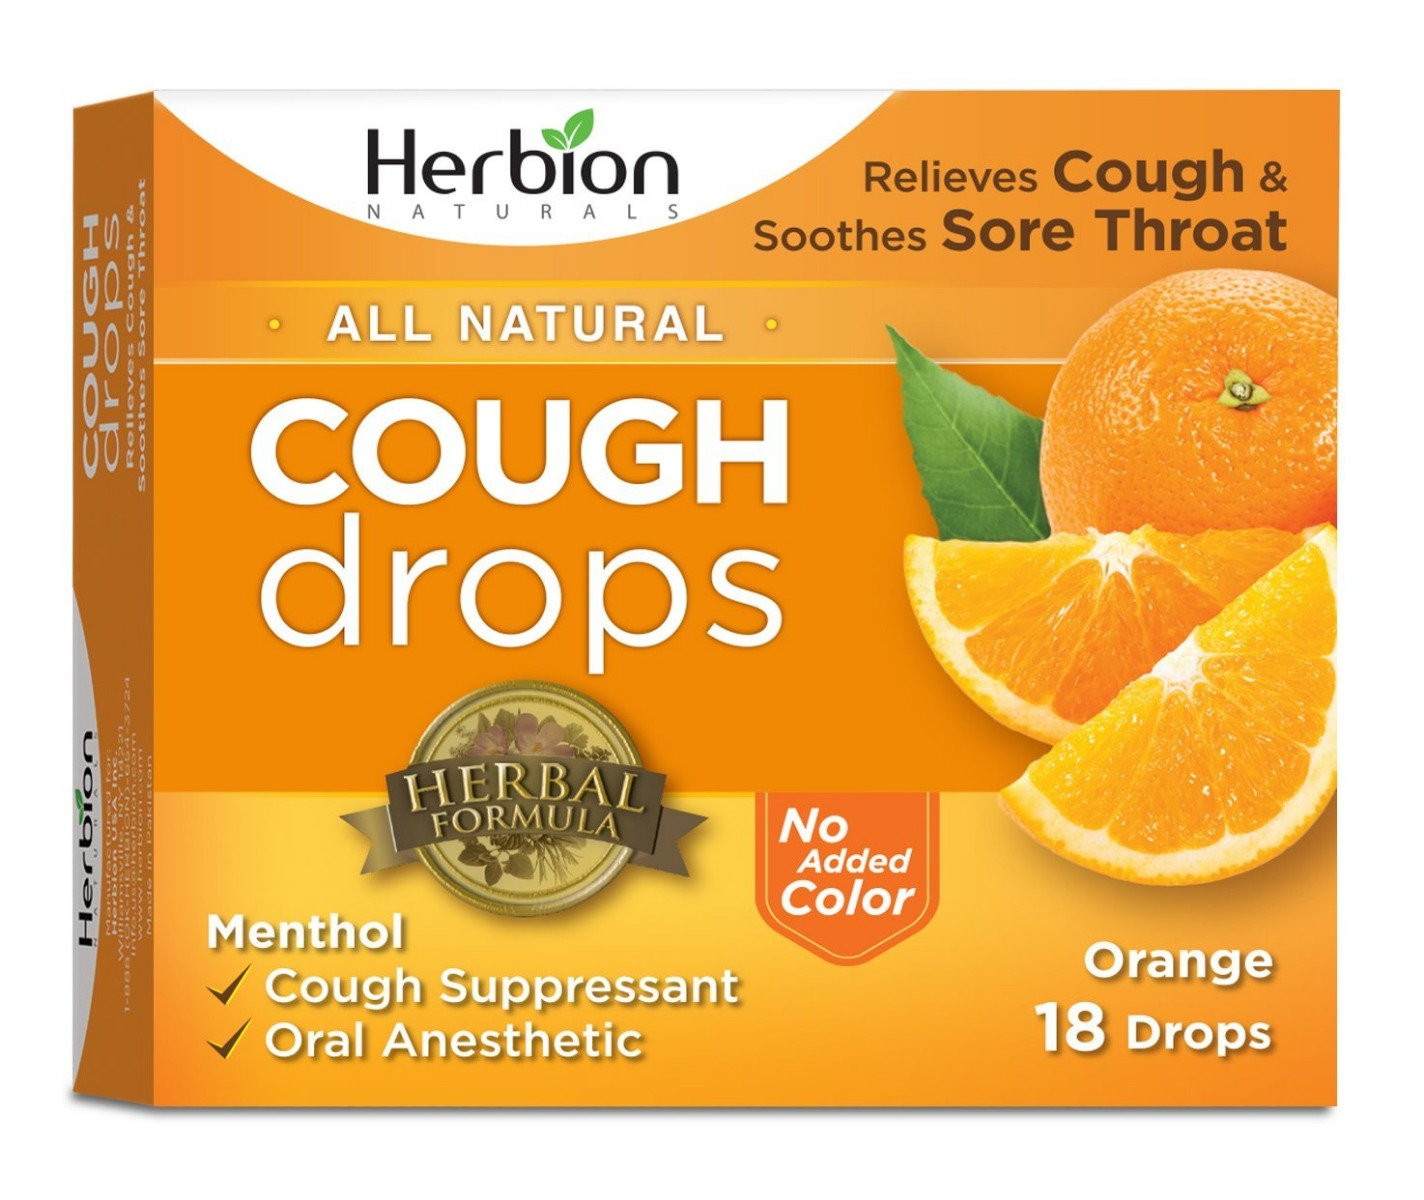 HERBION NATURALS: Cough Drops Orange, 18 pc